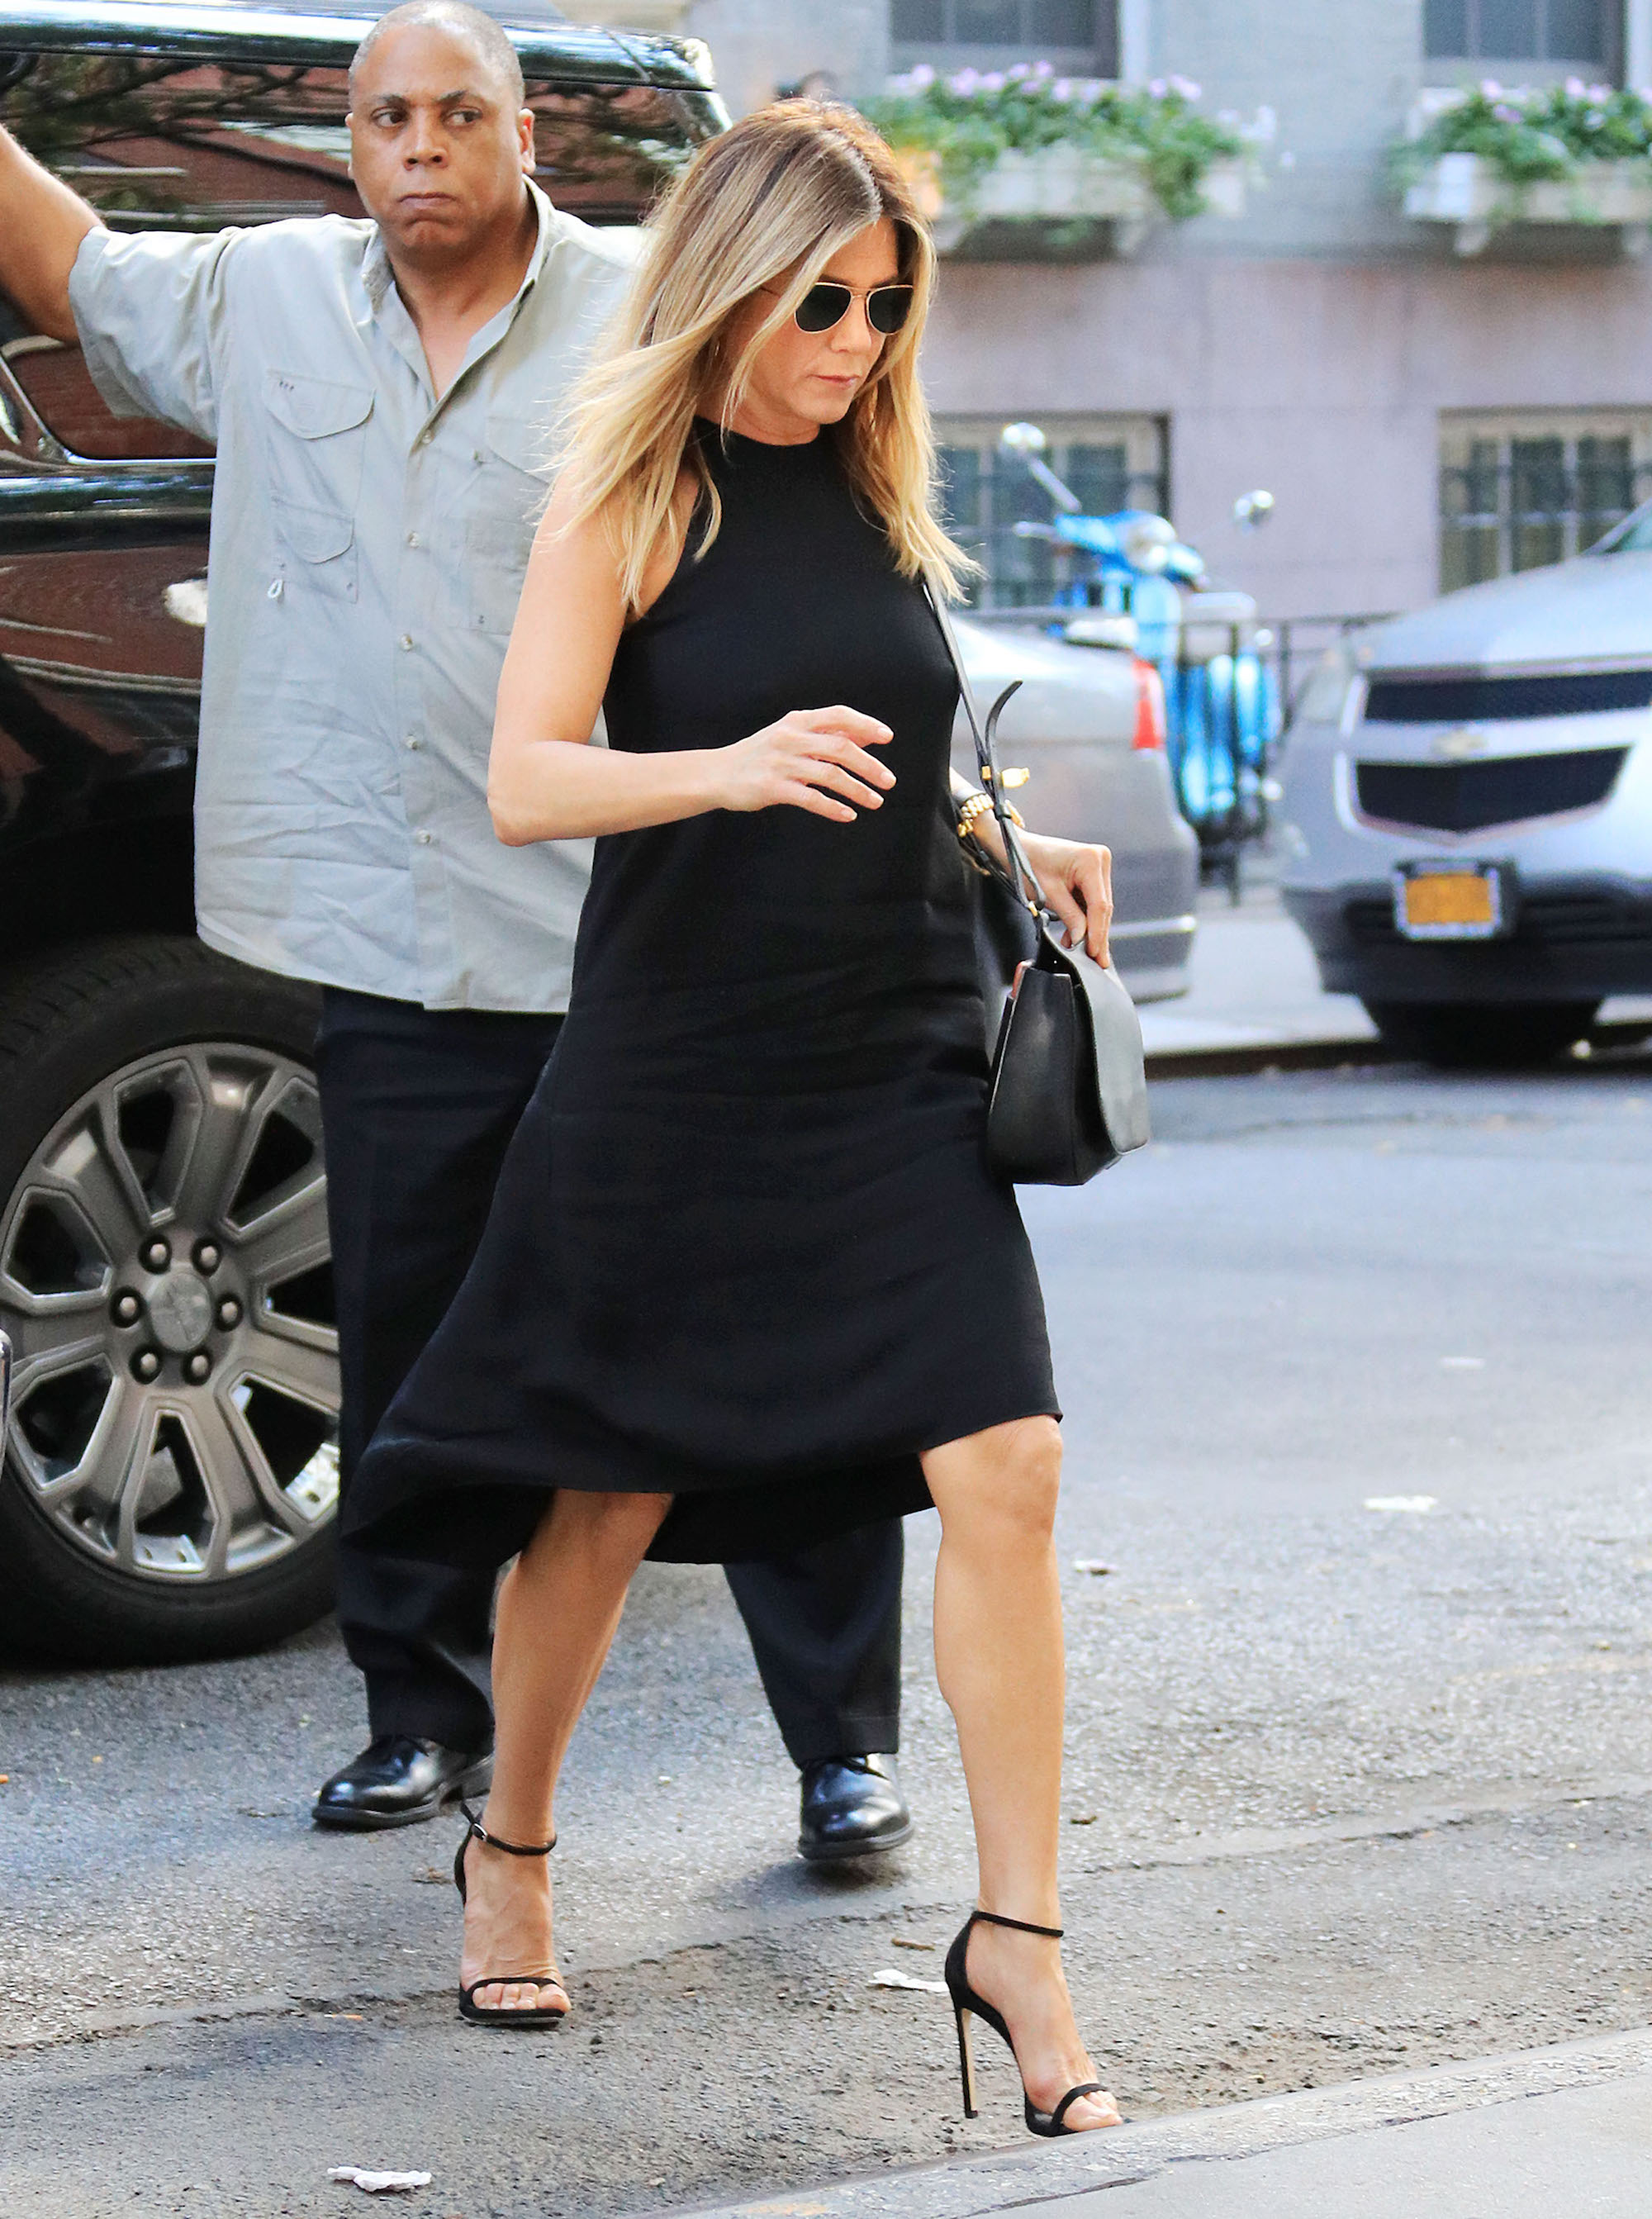 Jennifer aniston 39 s style file Jennifer aniston fashion style pictures